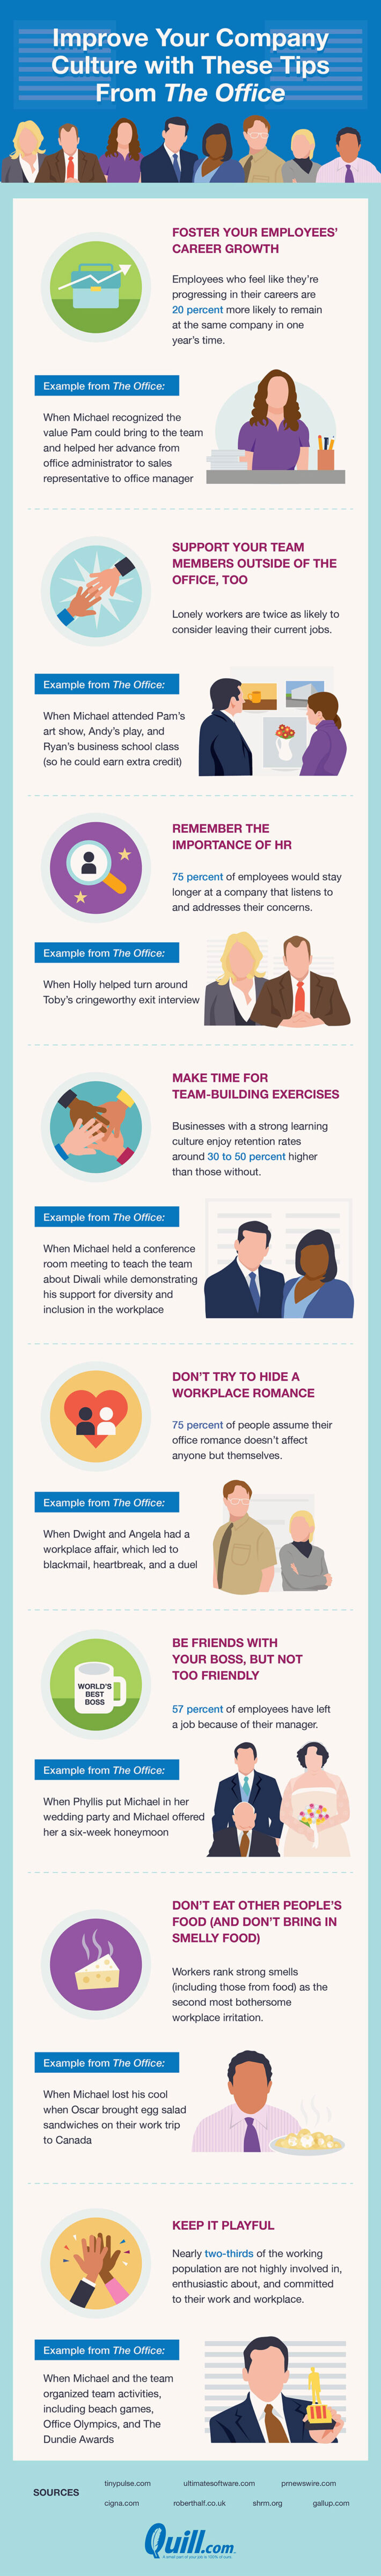 Company culture tips from the office